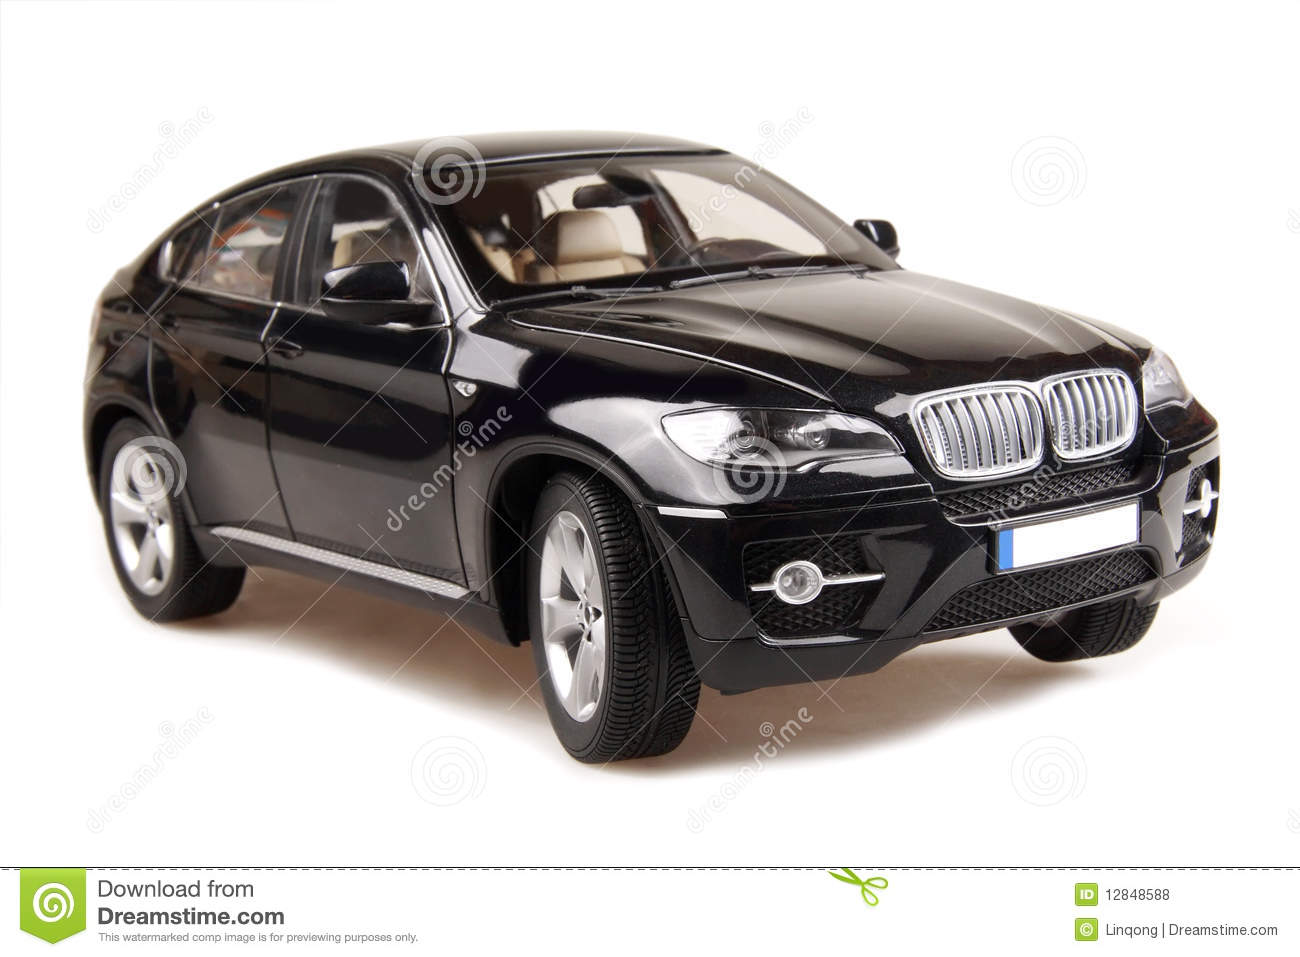 bmw suv car stock photo image of expensive family frankfurt 12848588. Black Bedroom Furniture Sets. Home Design Ideas